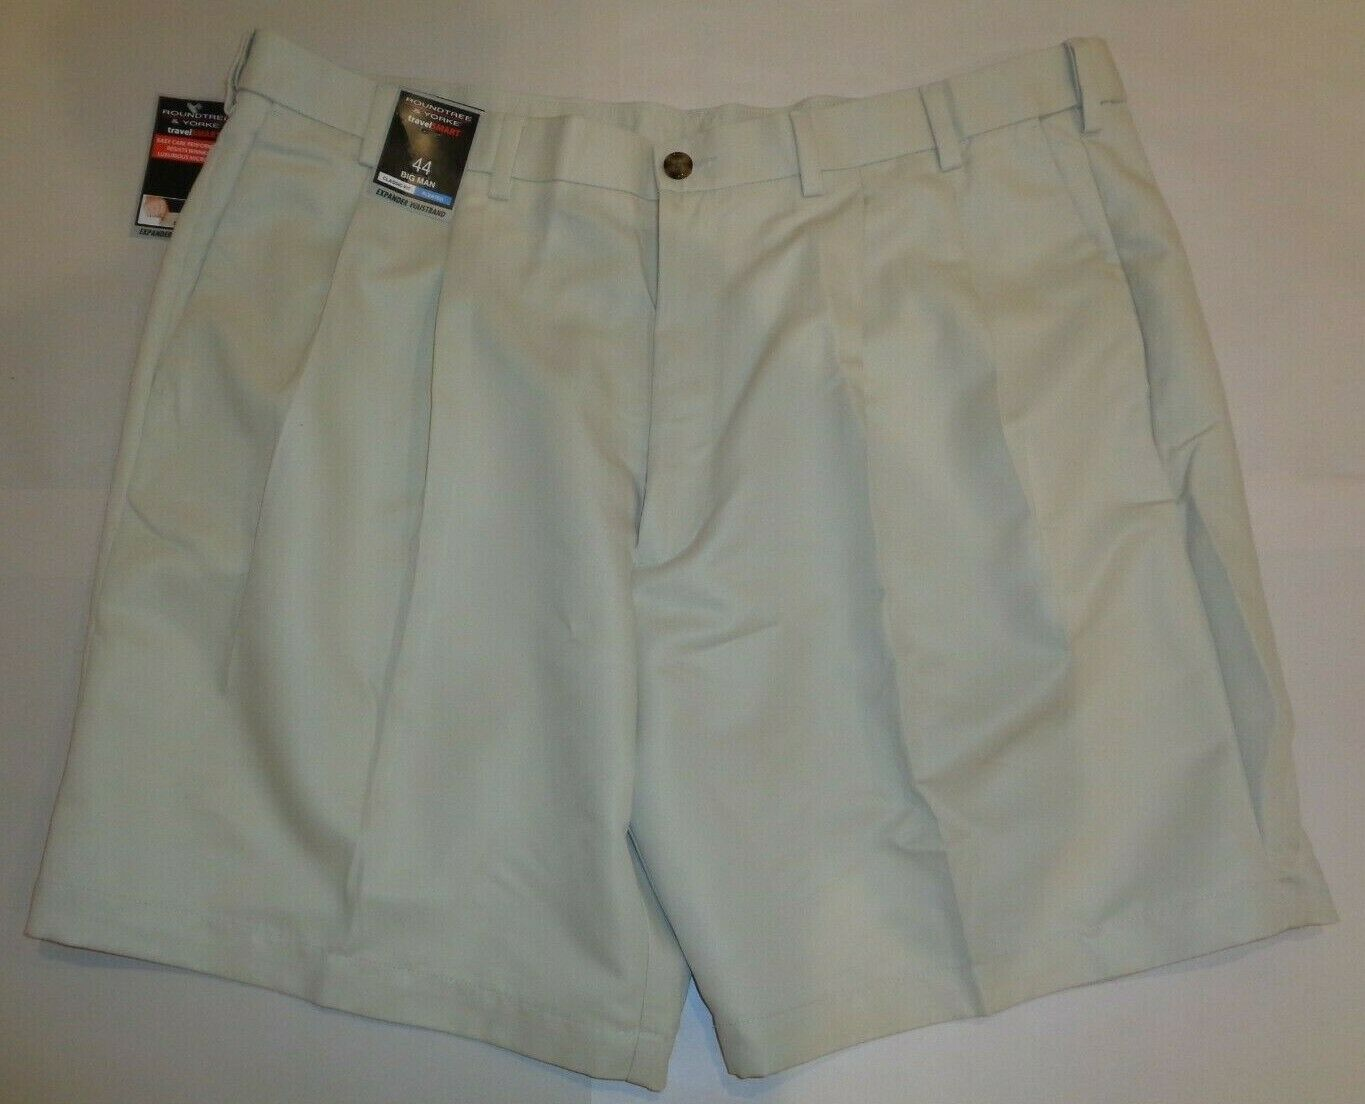 813c7ab029 Roundtree & Yorke Size 44 CLASSIC FIT TRAVEL SMART Stone Pleated Shorts New  Mens